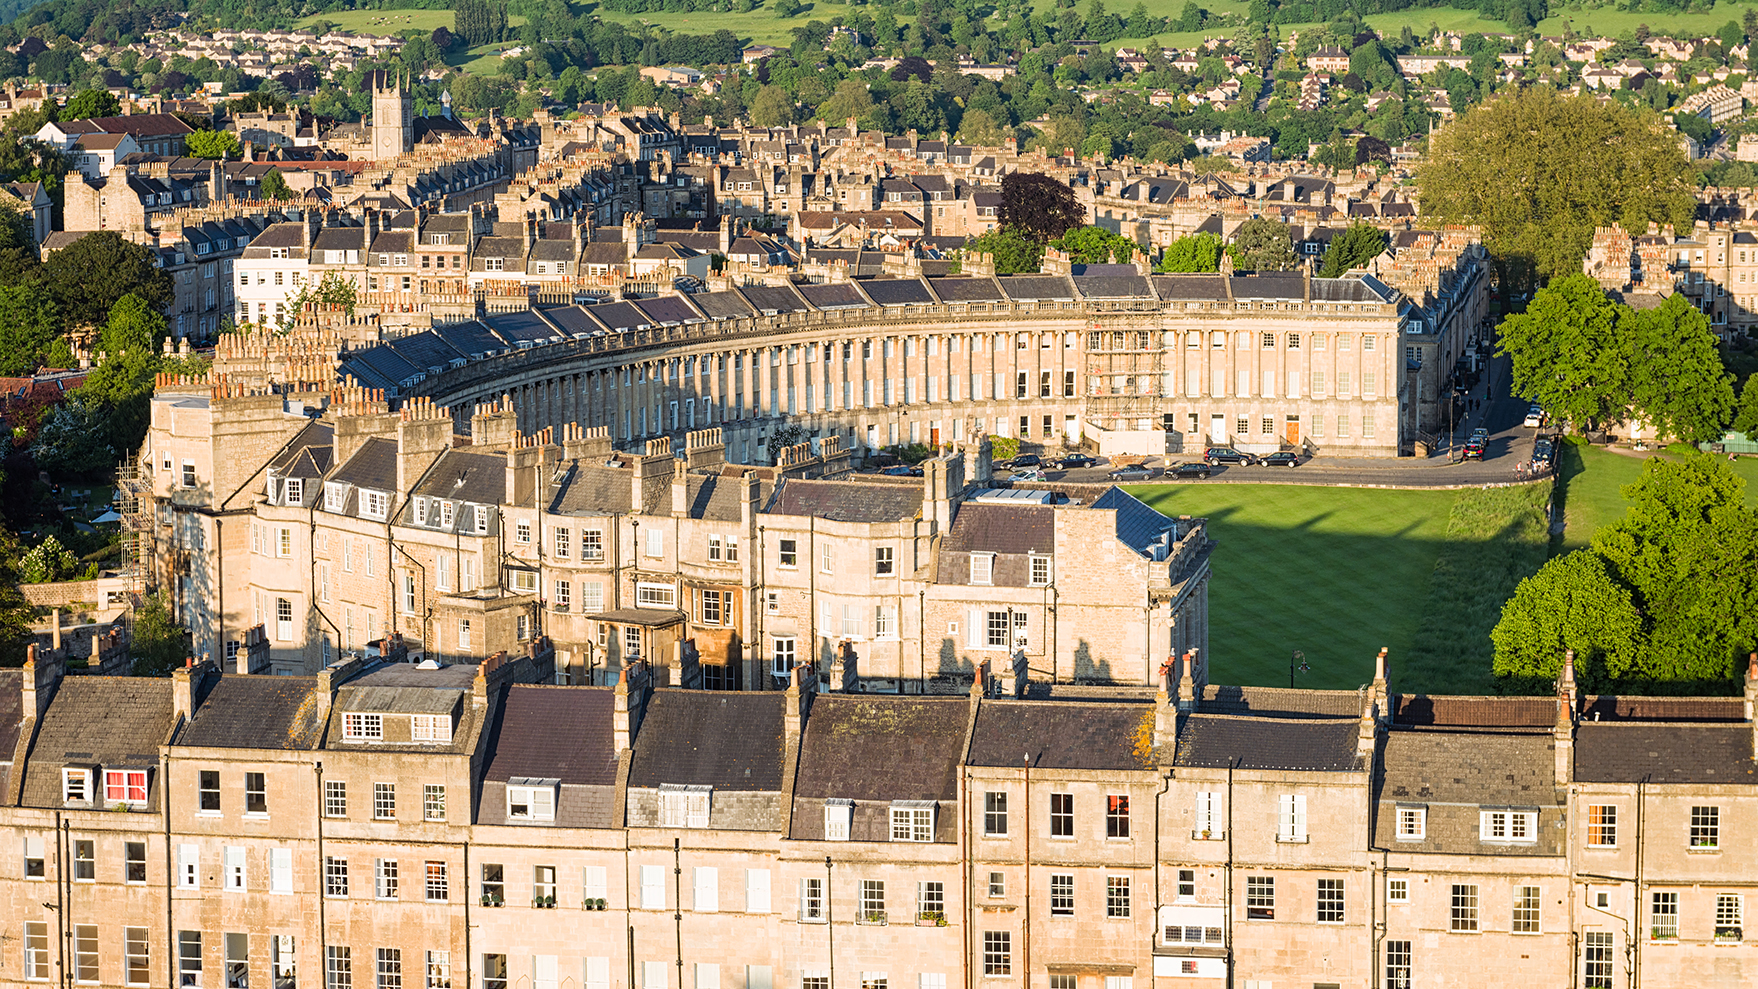 Aerial view of Royal Crescent in Bath, England